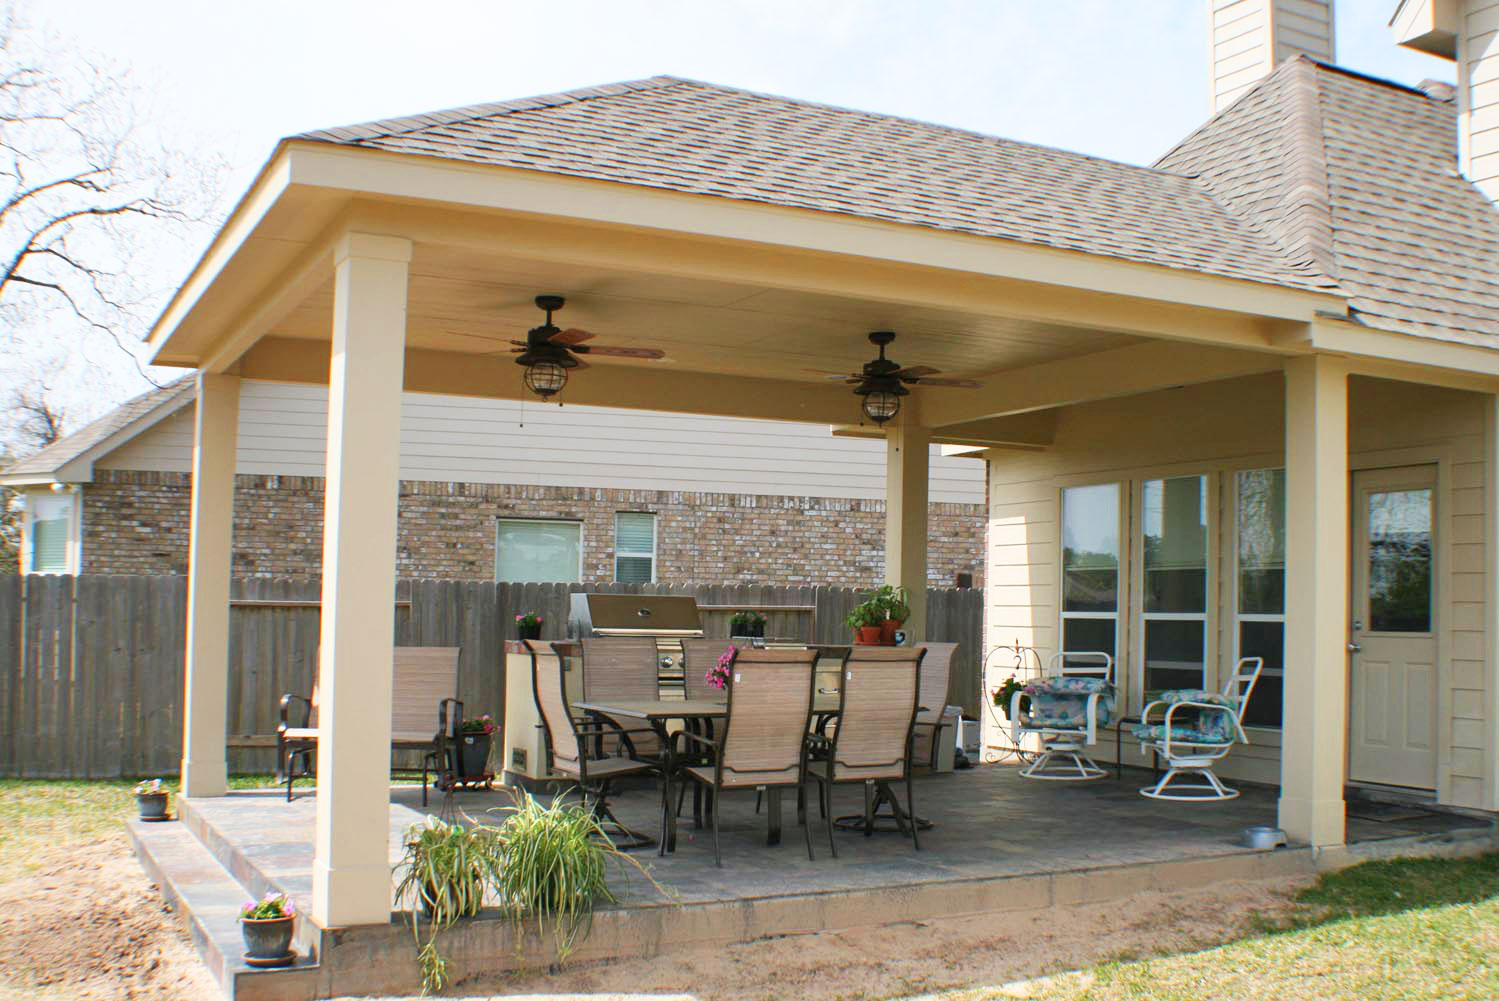 16 by 20 Patio Cover + Outdoor Kitchen - HHI Patio Covers on Patio Cover Ideas id=42058